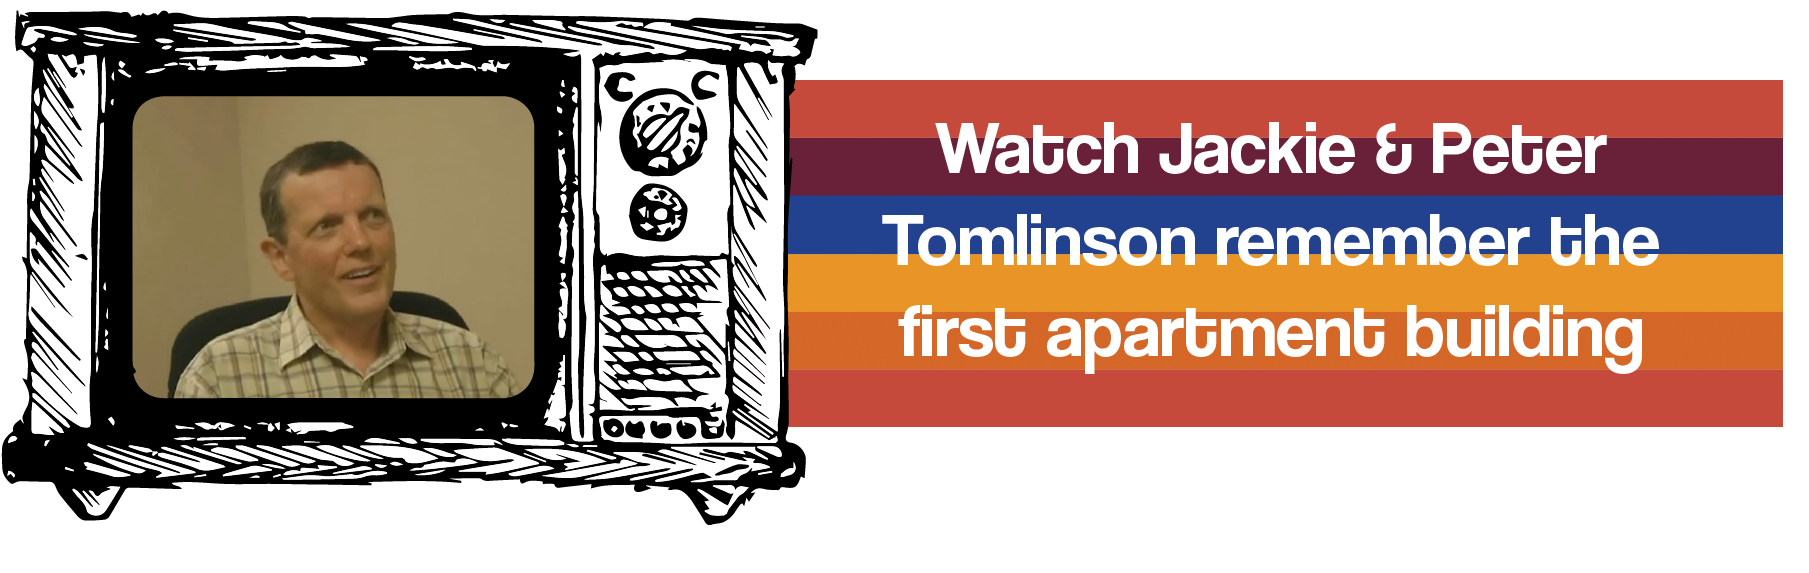 Watch Jackie and Peter Tomlinson remember the first apartment building